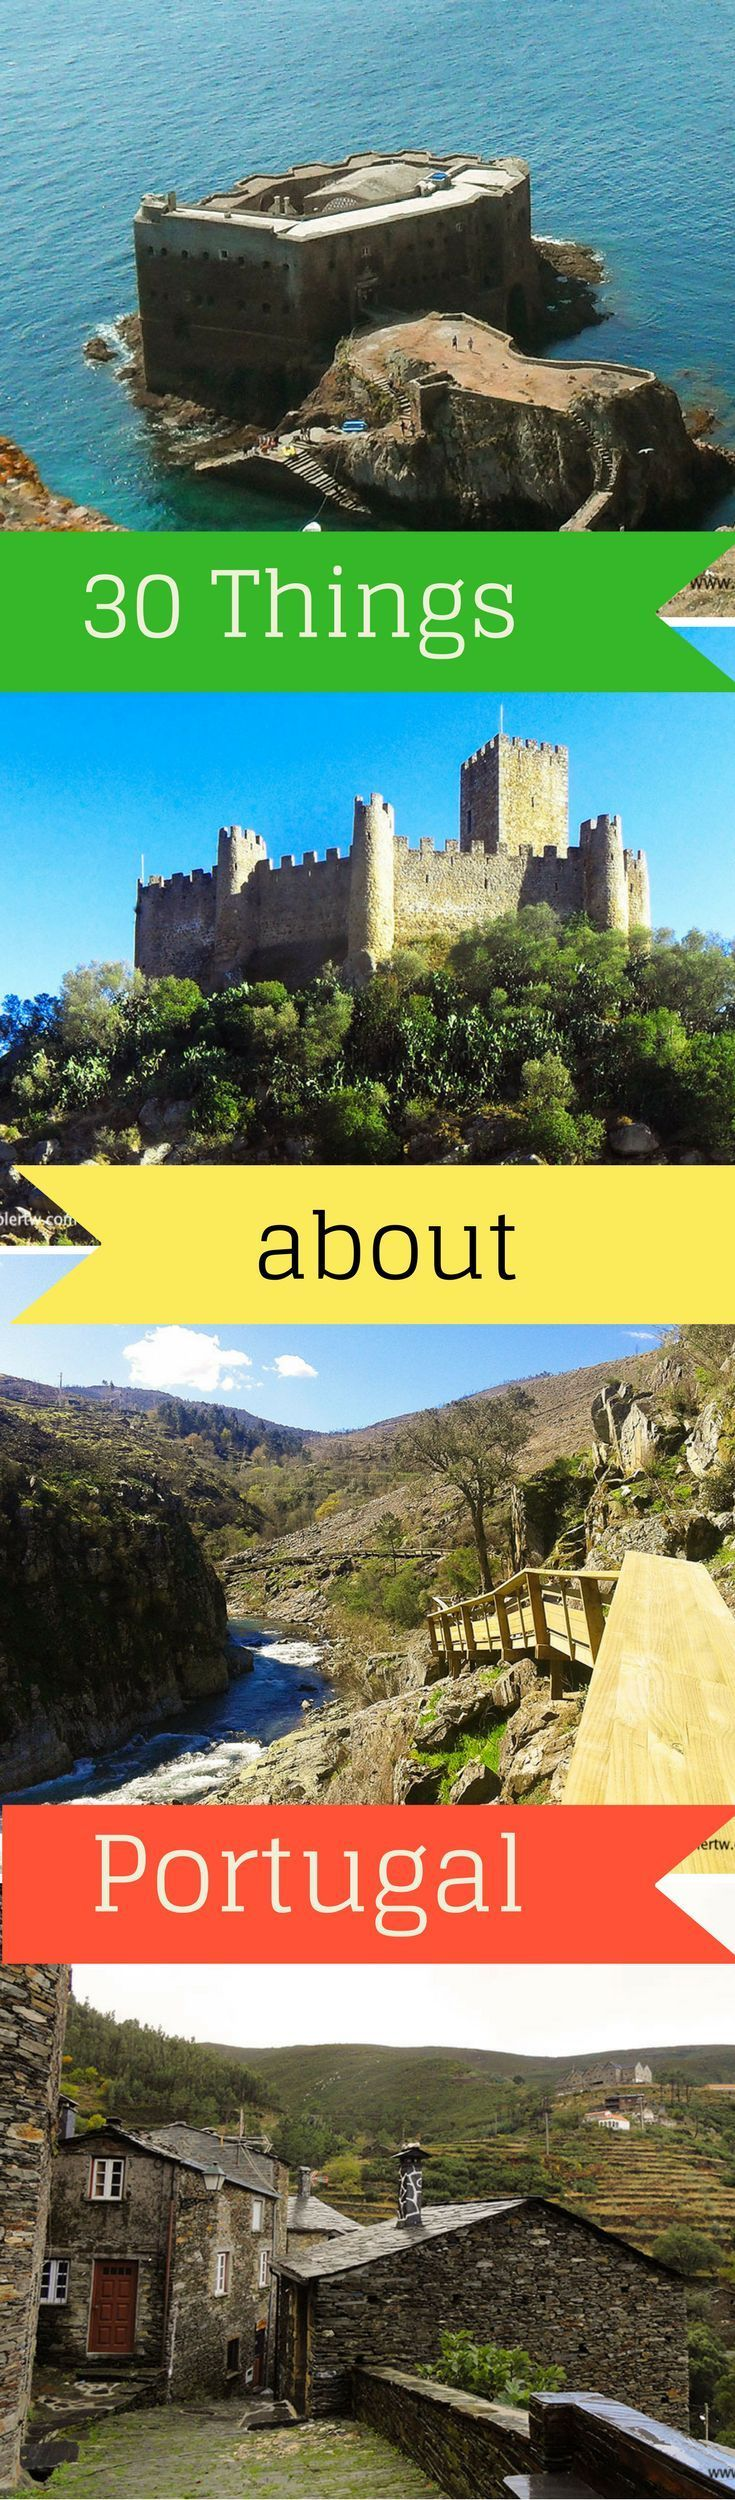 30 things you should know about Portugal. Travel in Europe.